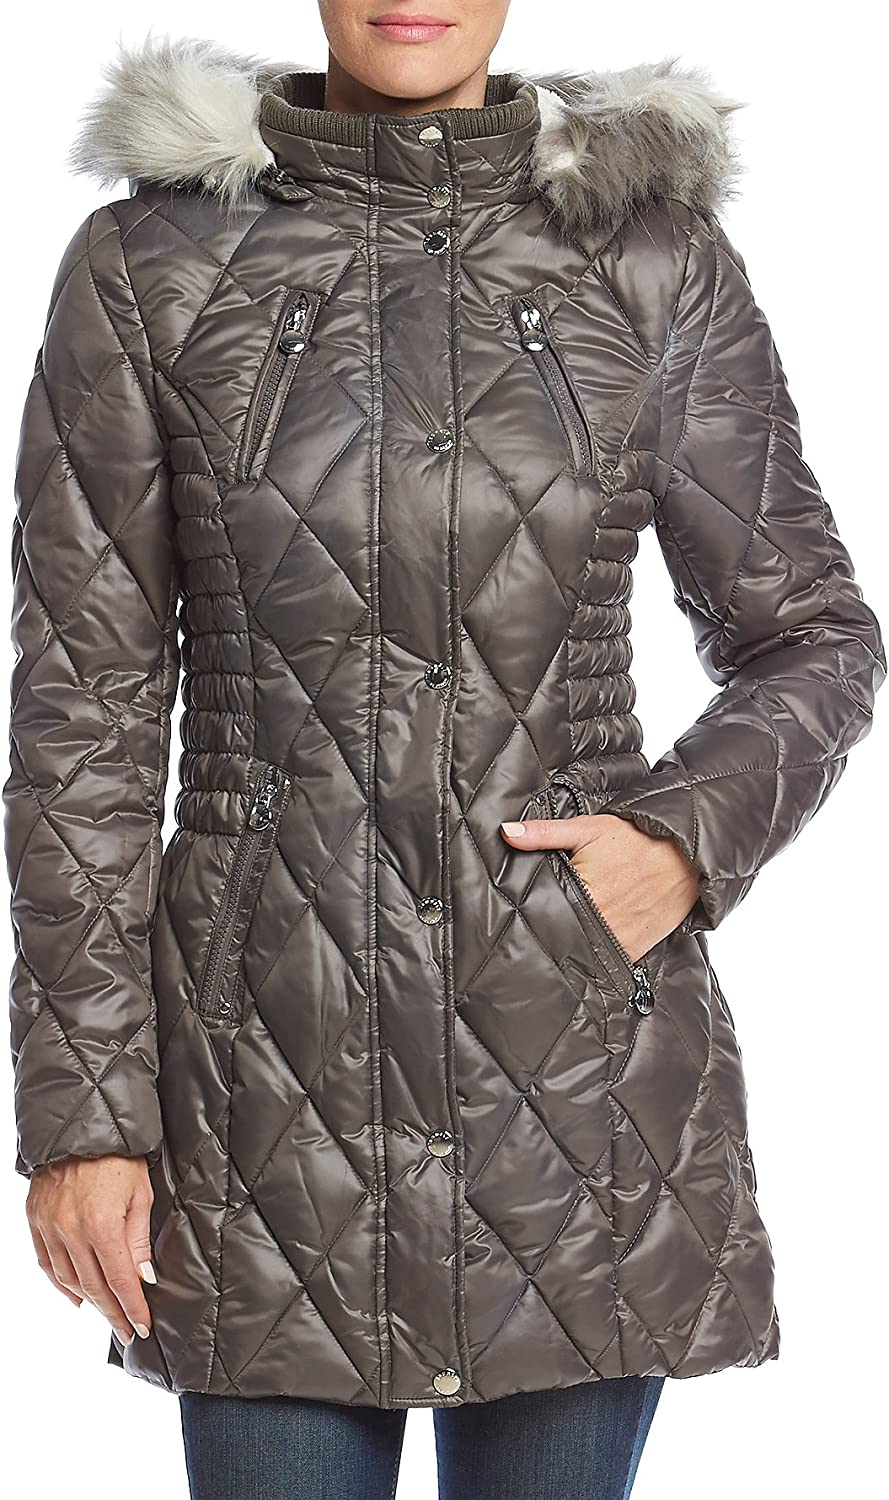 Laundry Diamond Quilted Puffer Jacket